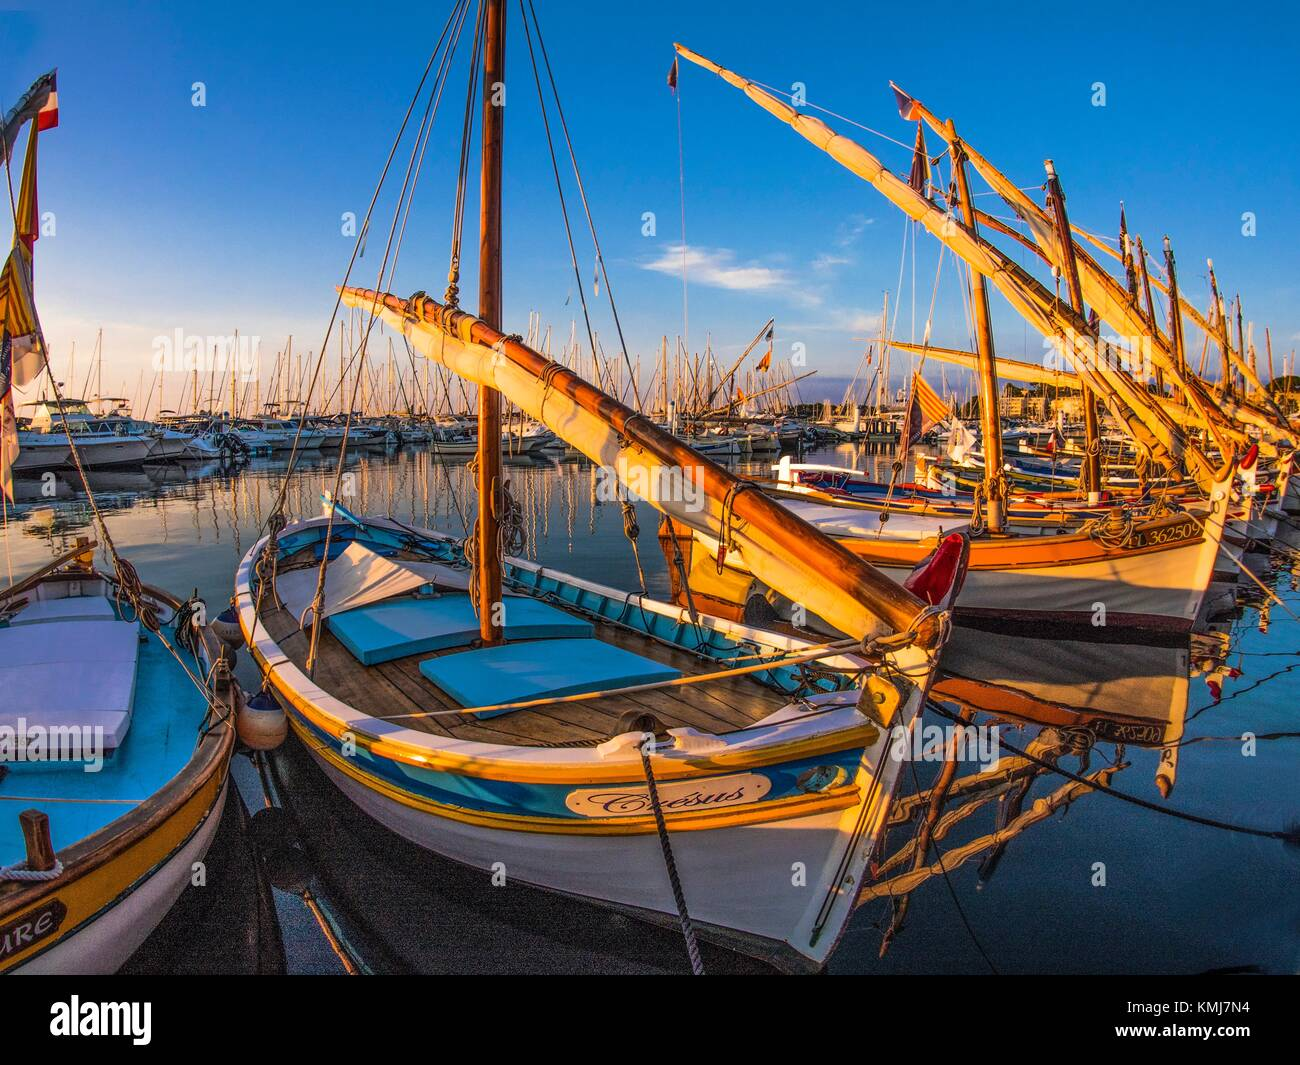 Freance-Paca-Cote d´Azur, traditional fishing boats at Bandol. - Stock Image